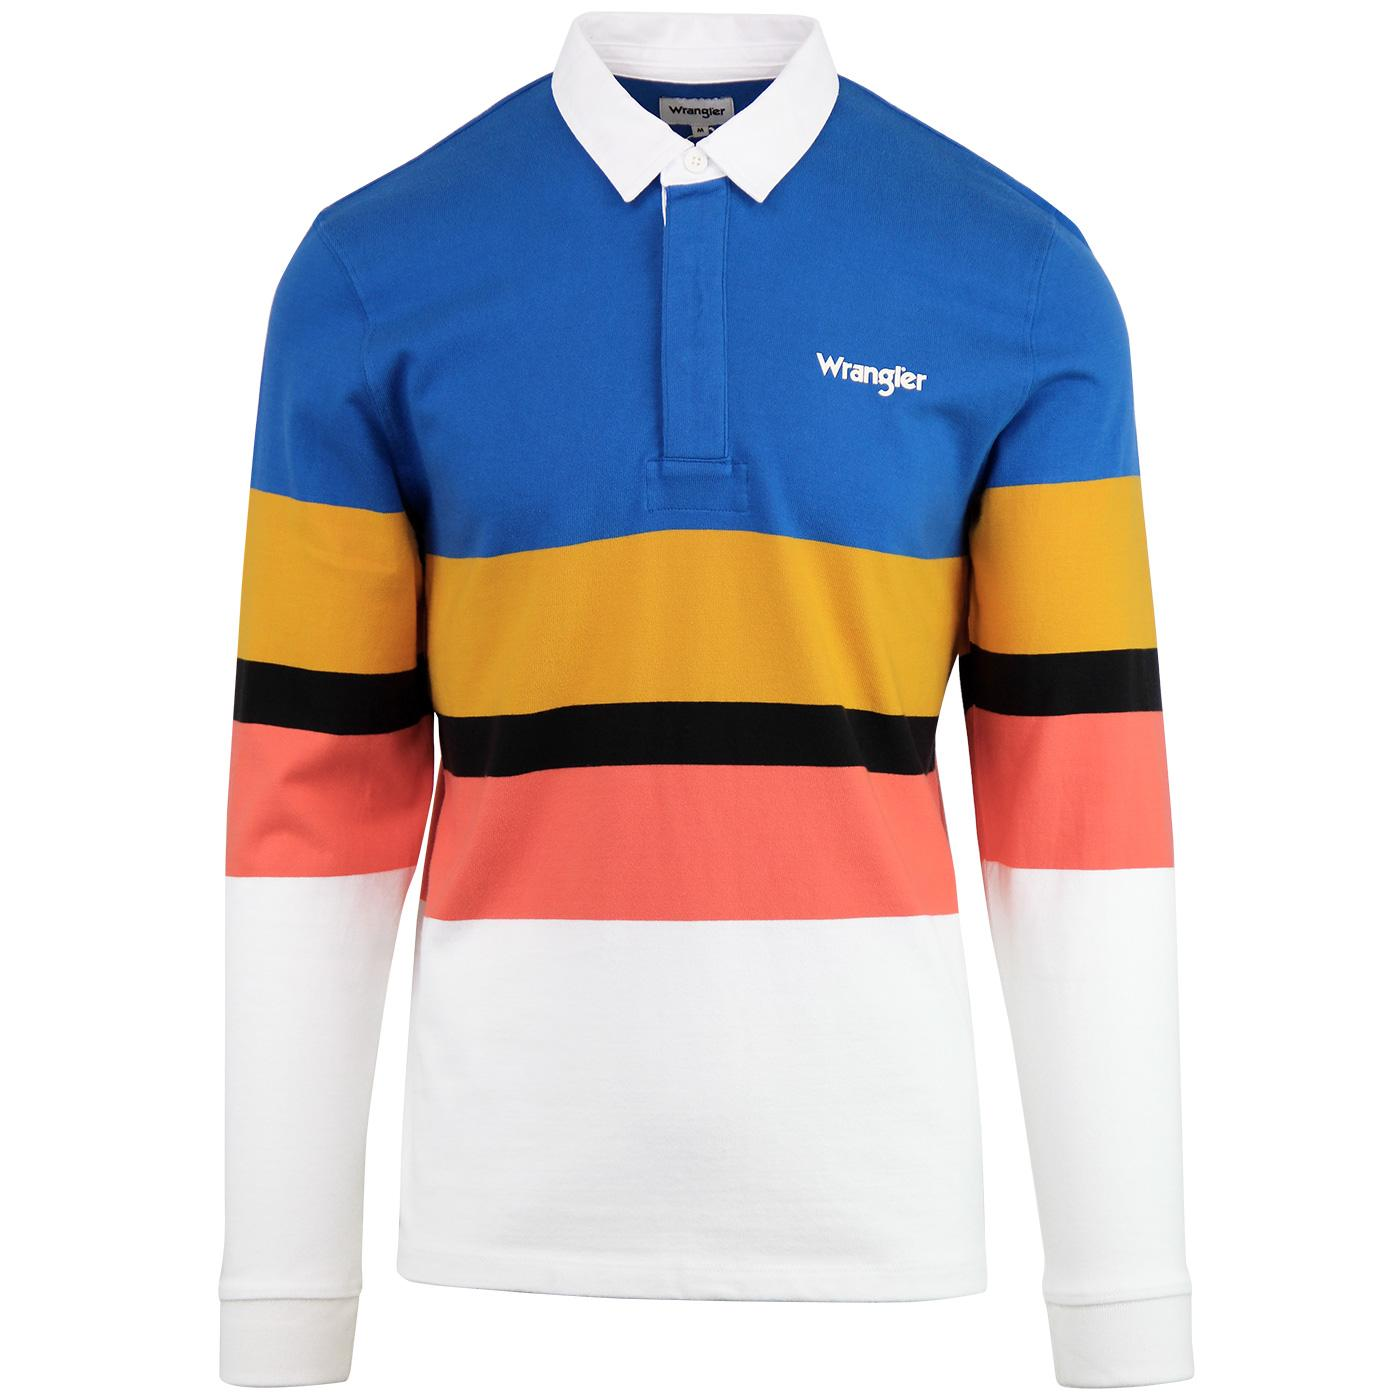 WRANGLER Men's Retro 70s Rugby Polo- Deep Water